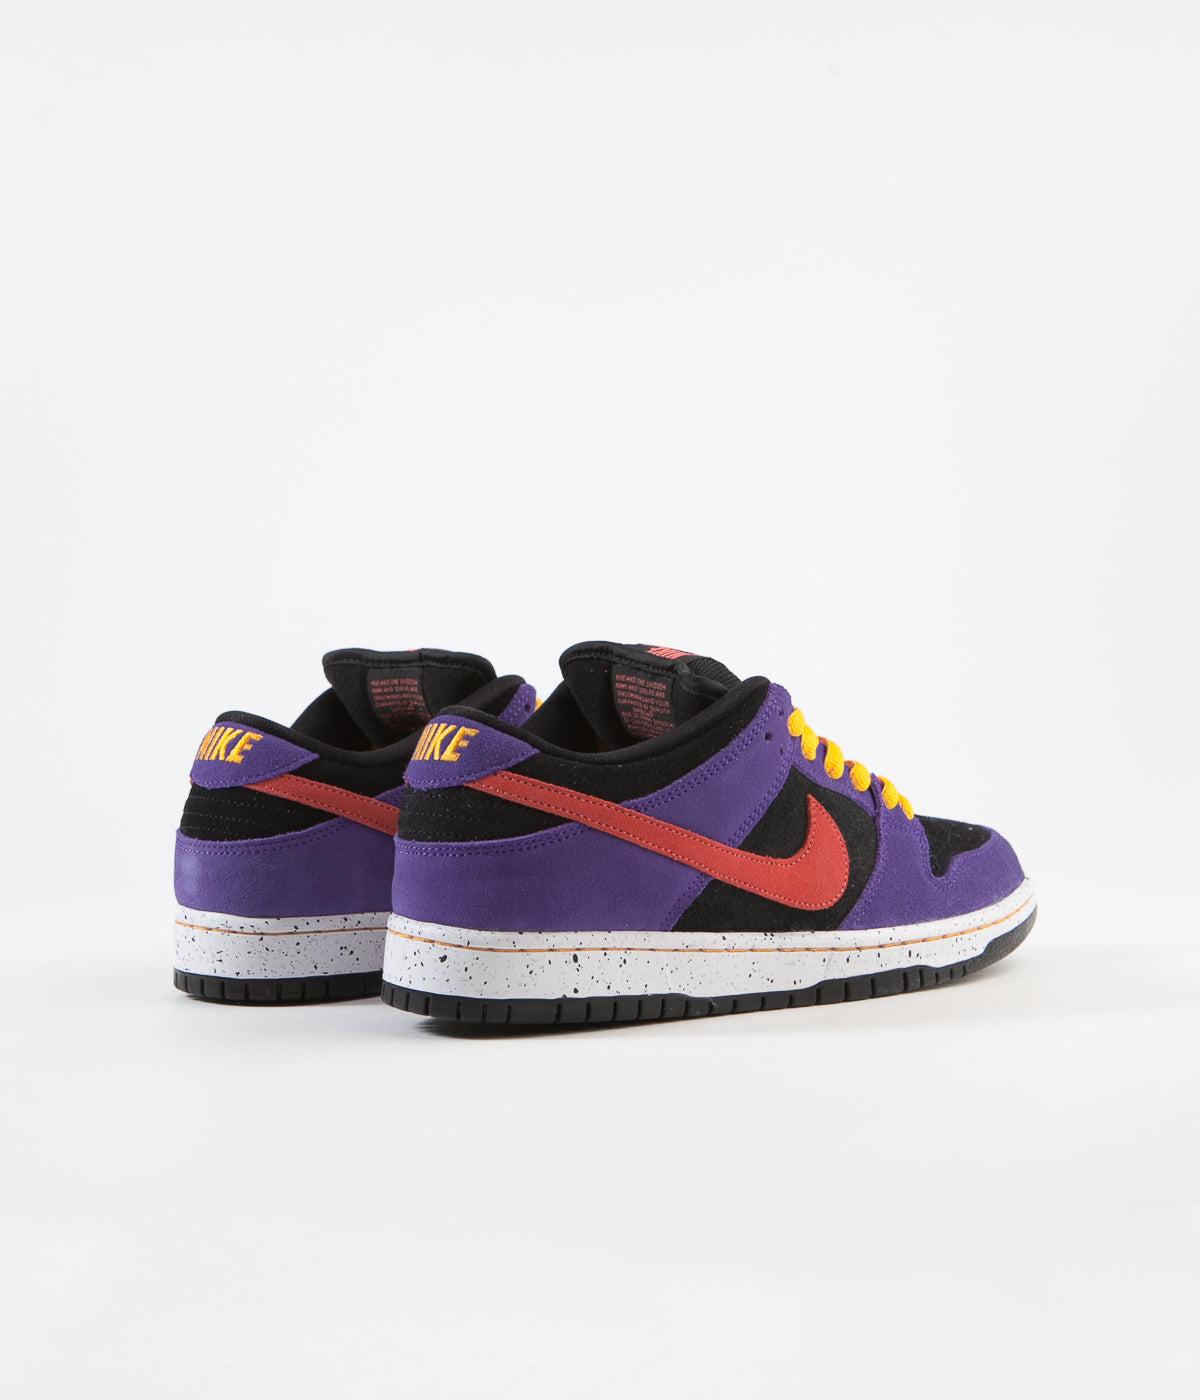 Nike SB Dunk Low Pro 'ACG Terra' Shoes - Black / Sunburst - Varsity Purple - Taxi